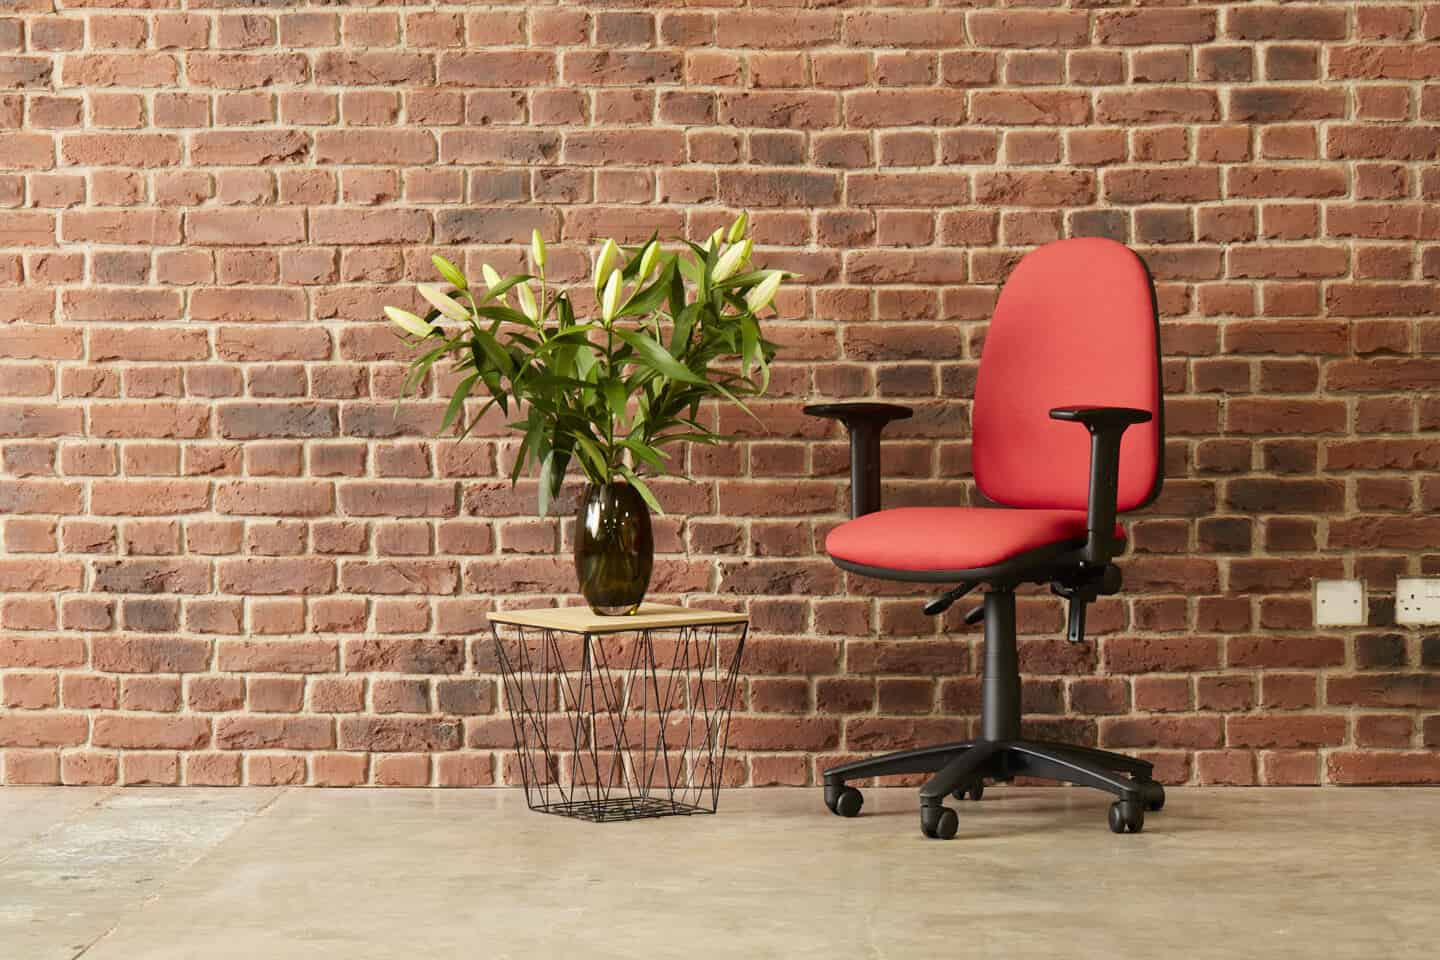 An ergonomic office chair infront of an exposed brick wall and next to a coffee table with a vase of flowers on it